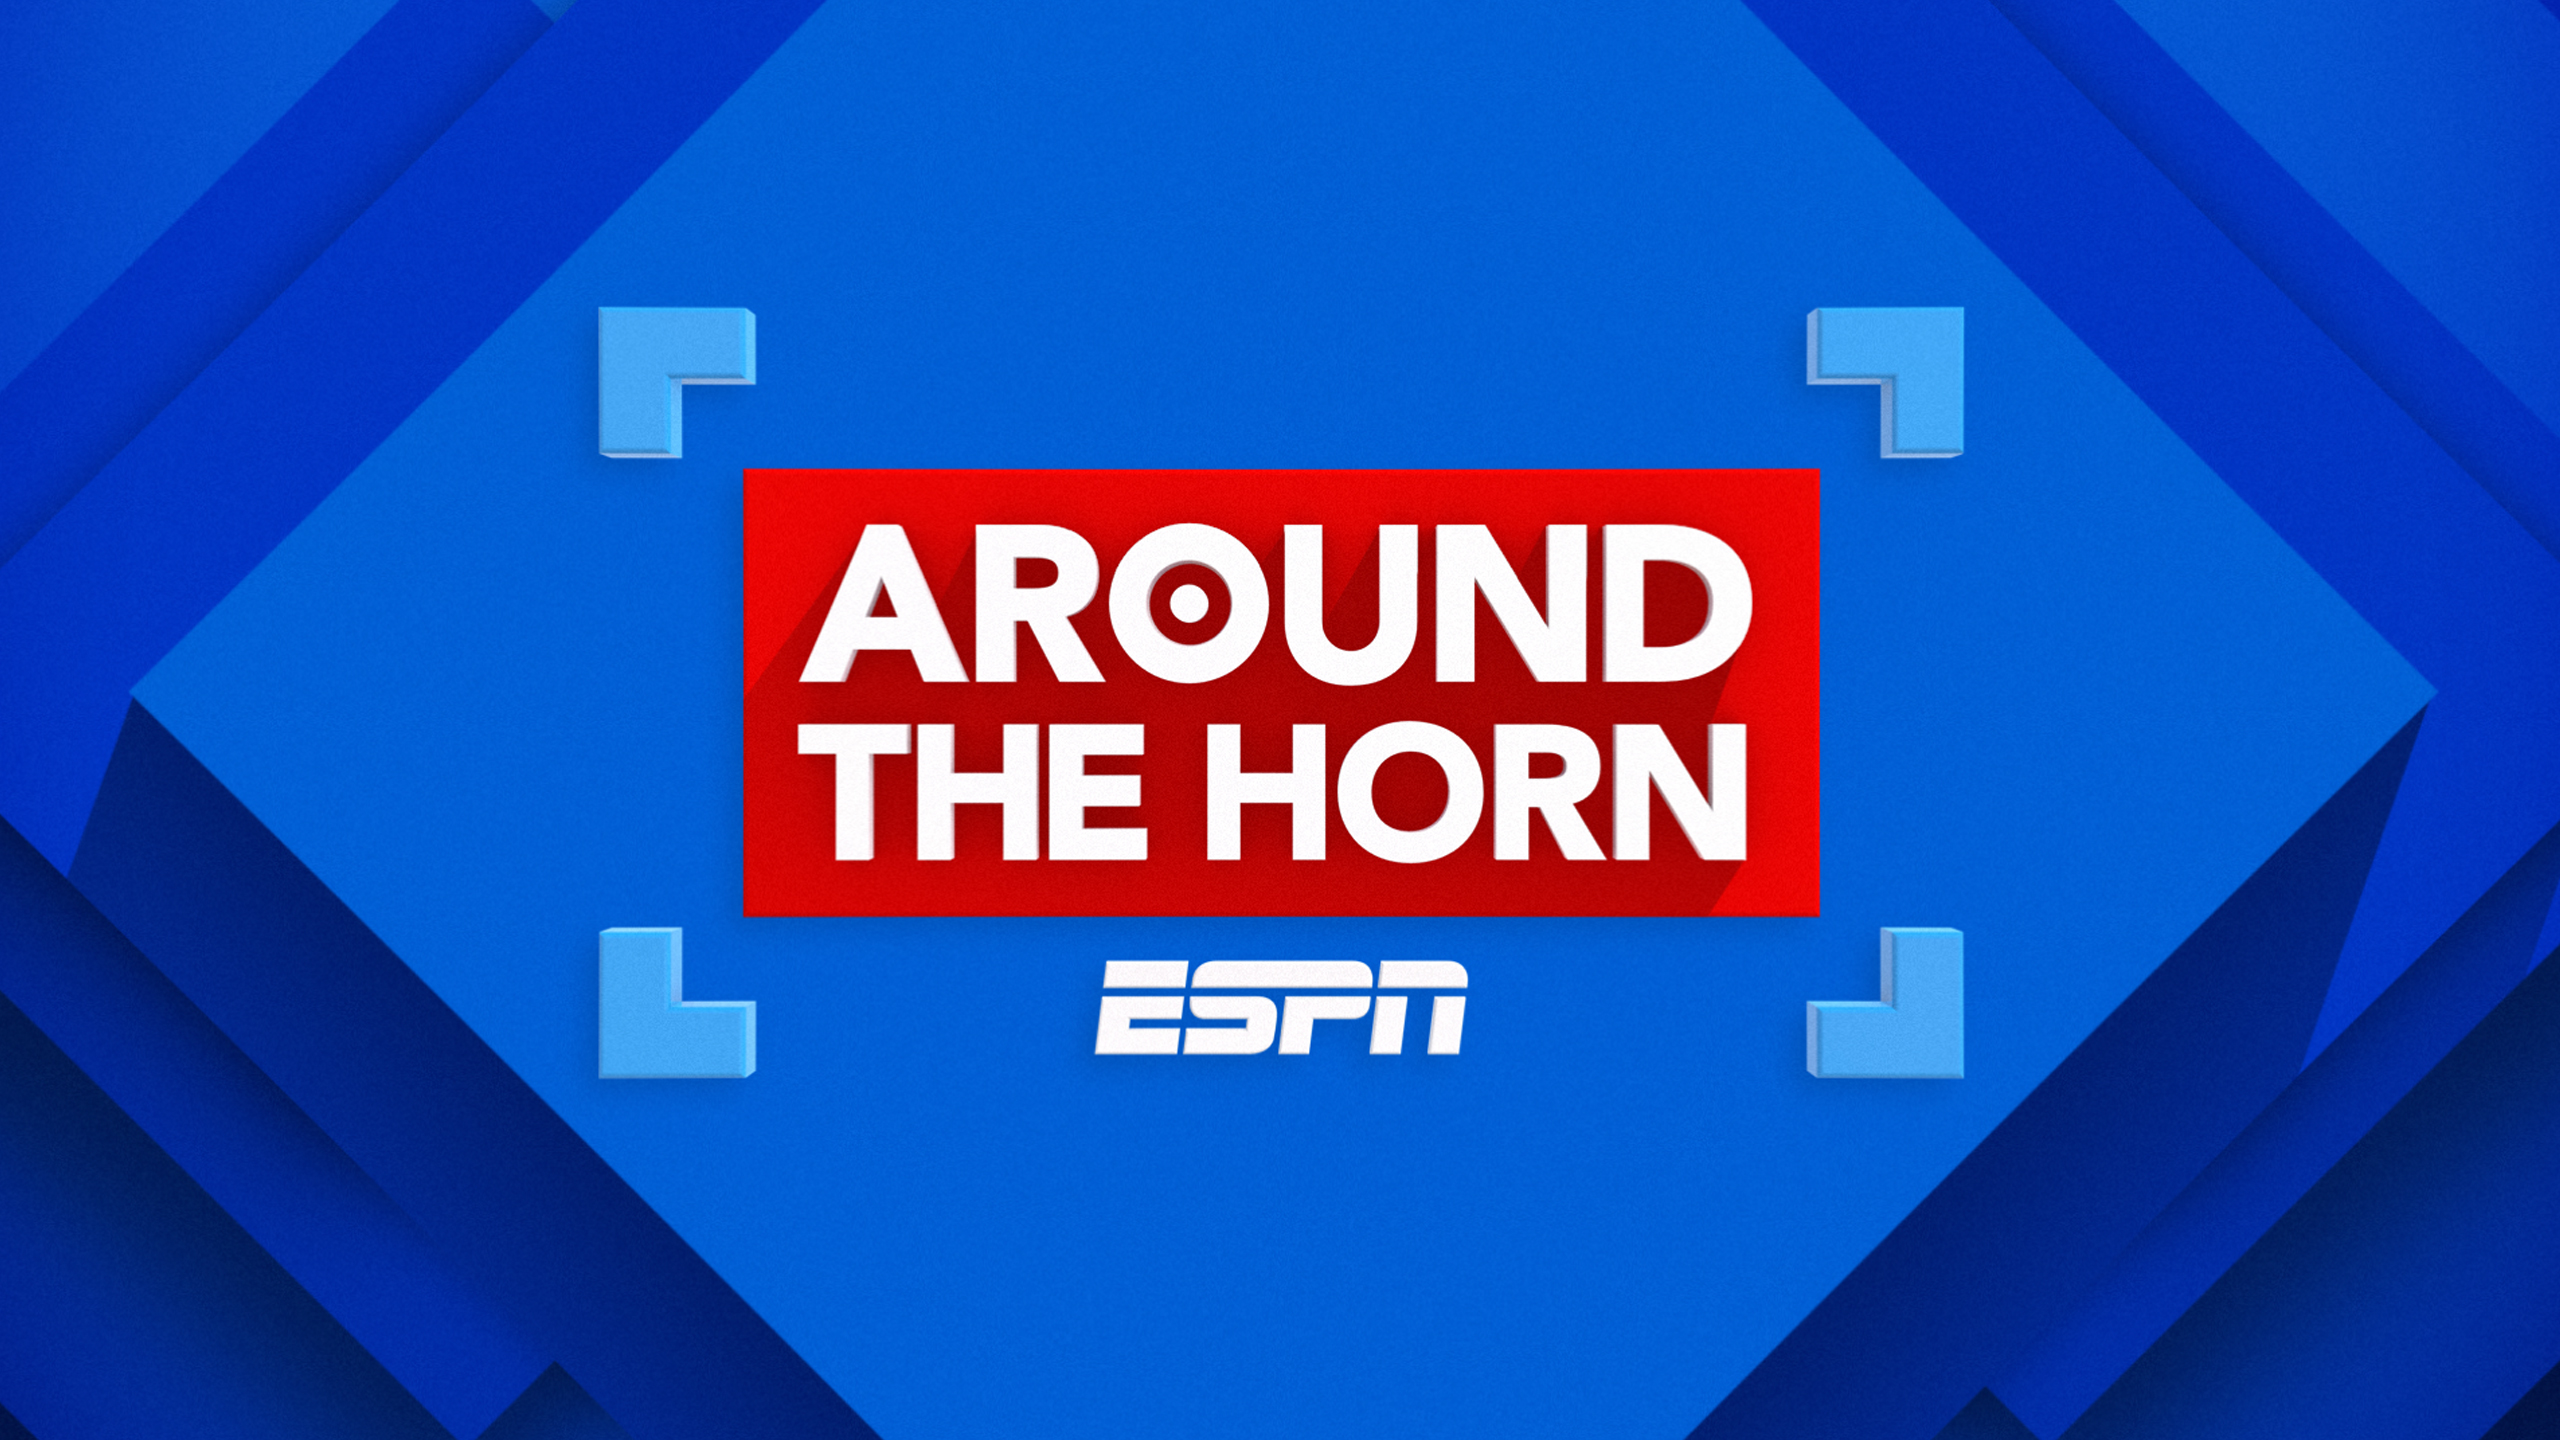 Fri, 10/12 - Around The Horn